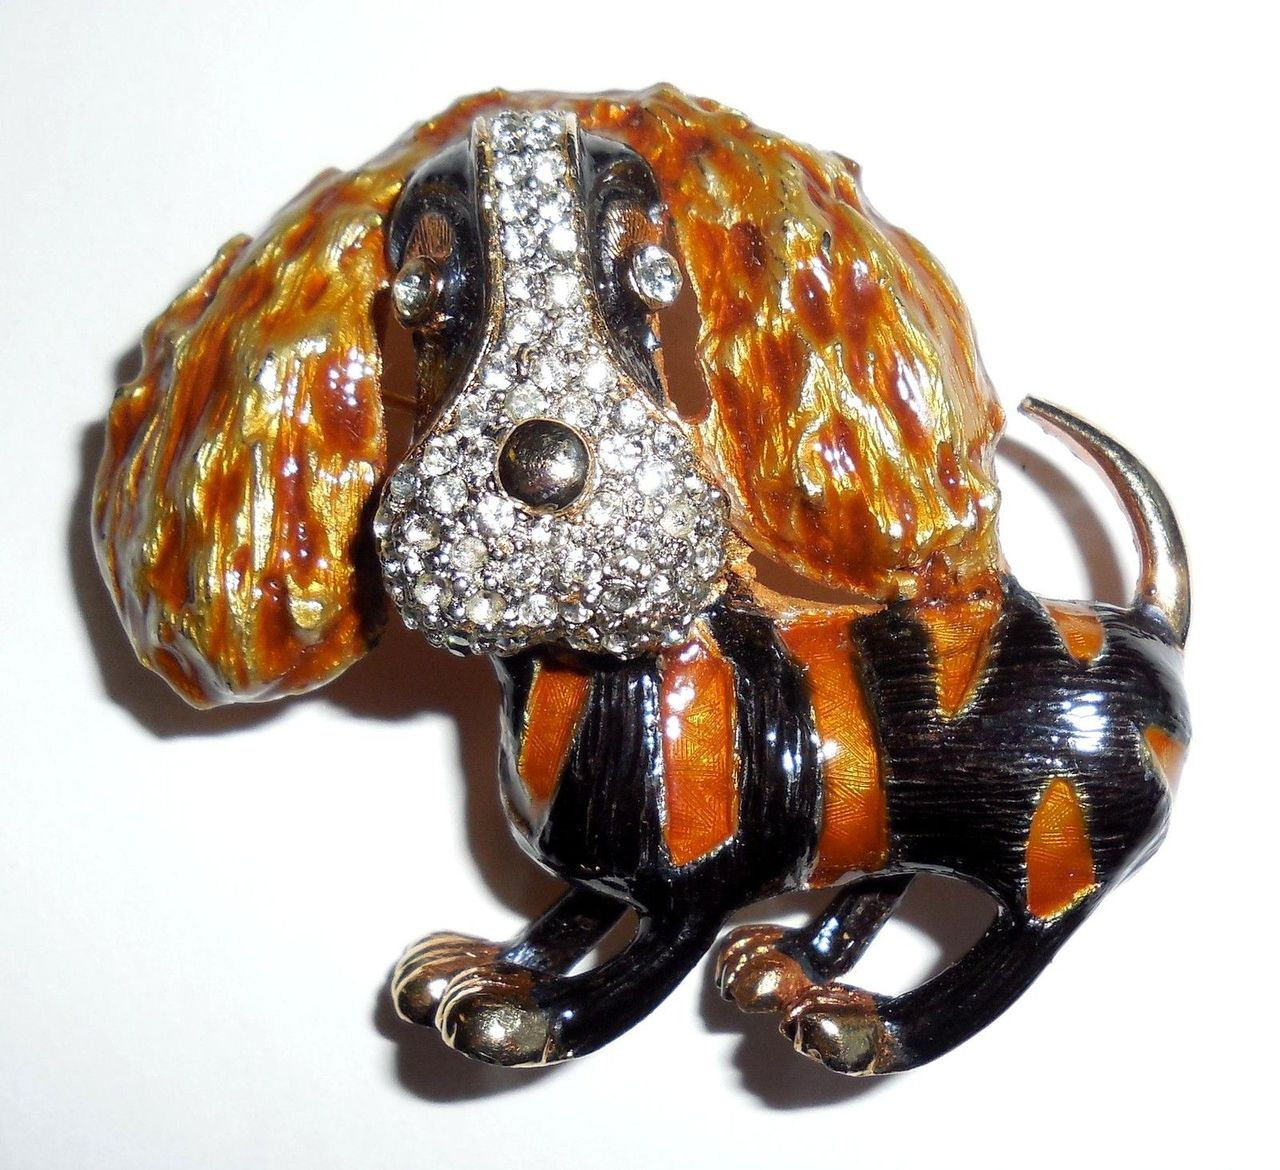 Enamel Rhinestone Cocker King Charles Spaniel Pin Puppy Dog No Wear Condition Crisp Clean